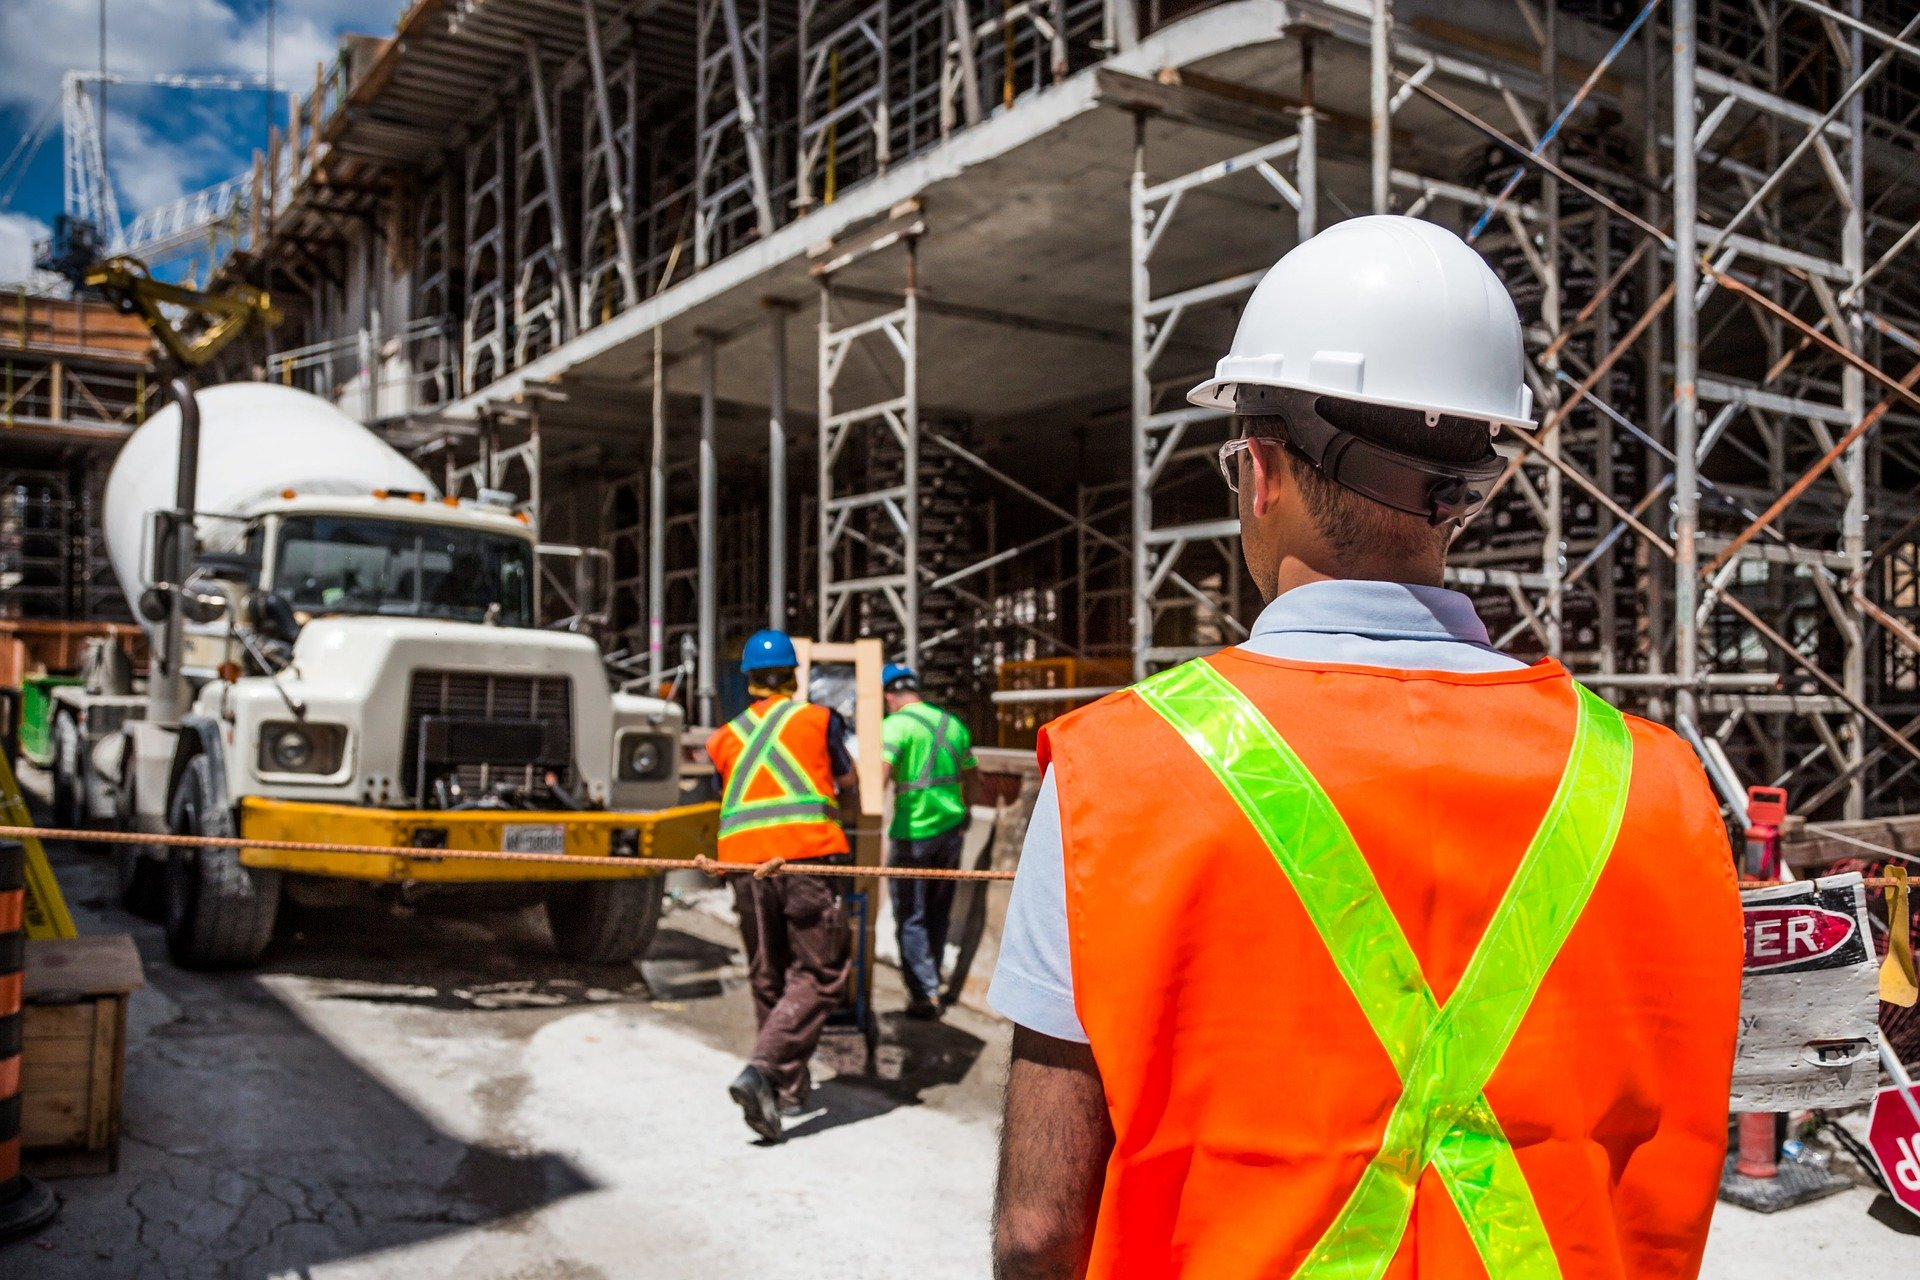 construction and transport workers face high risk of traumatic